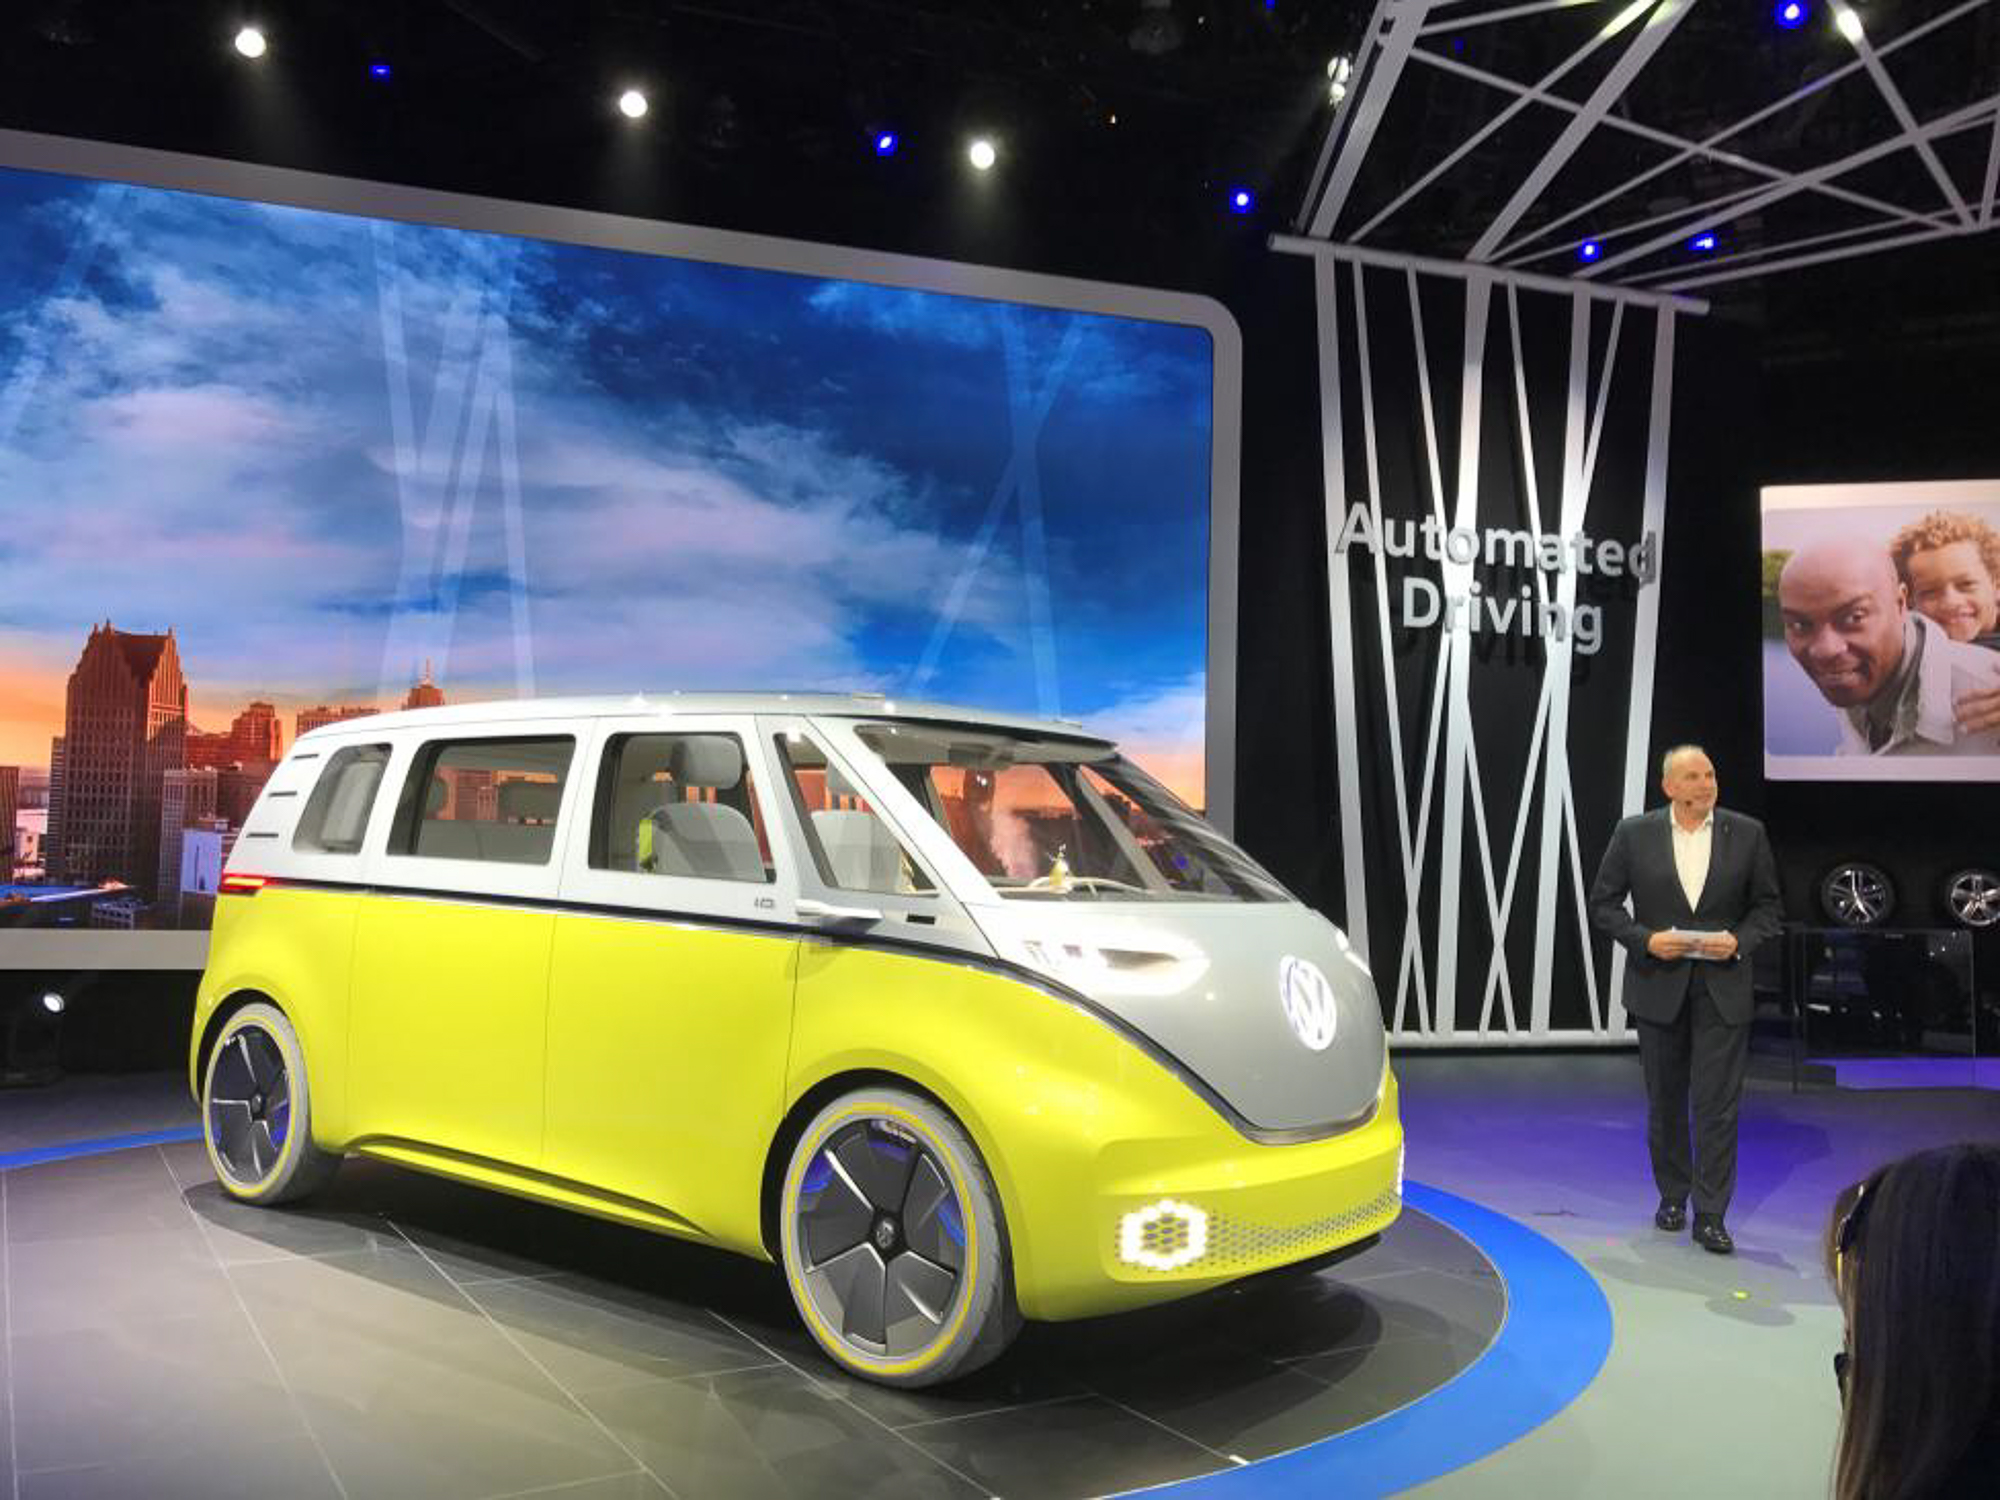 Volkswagen presents a new concept for an electric minibus